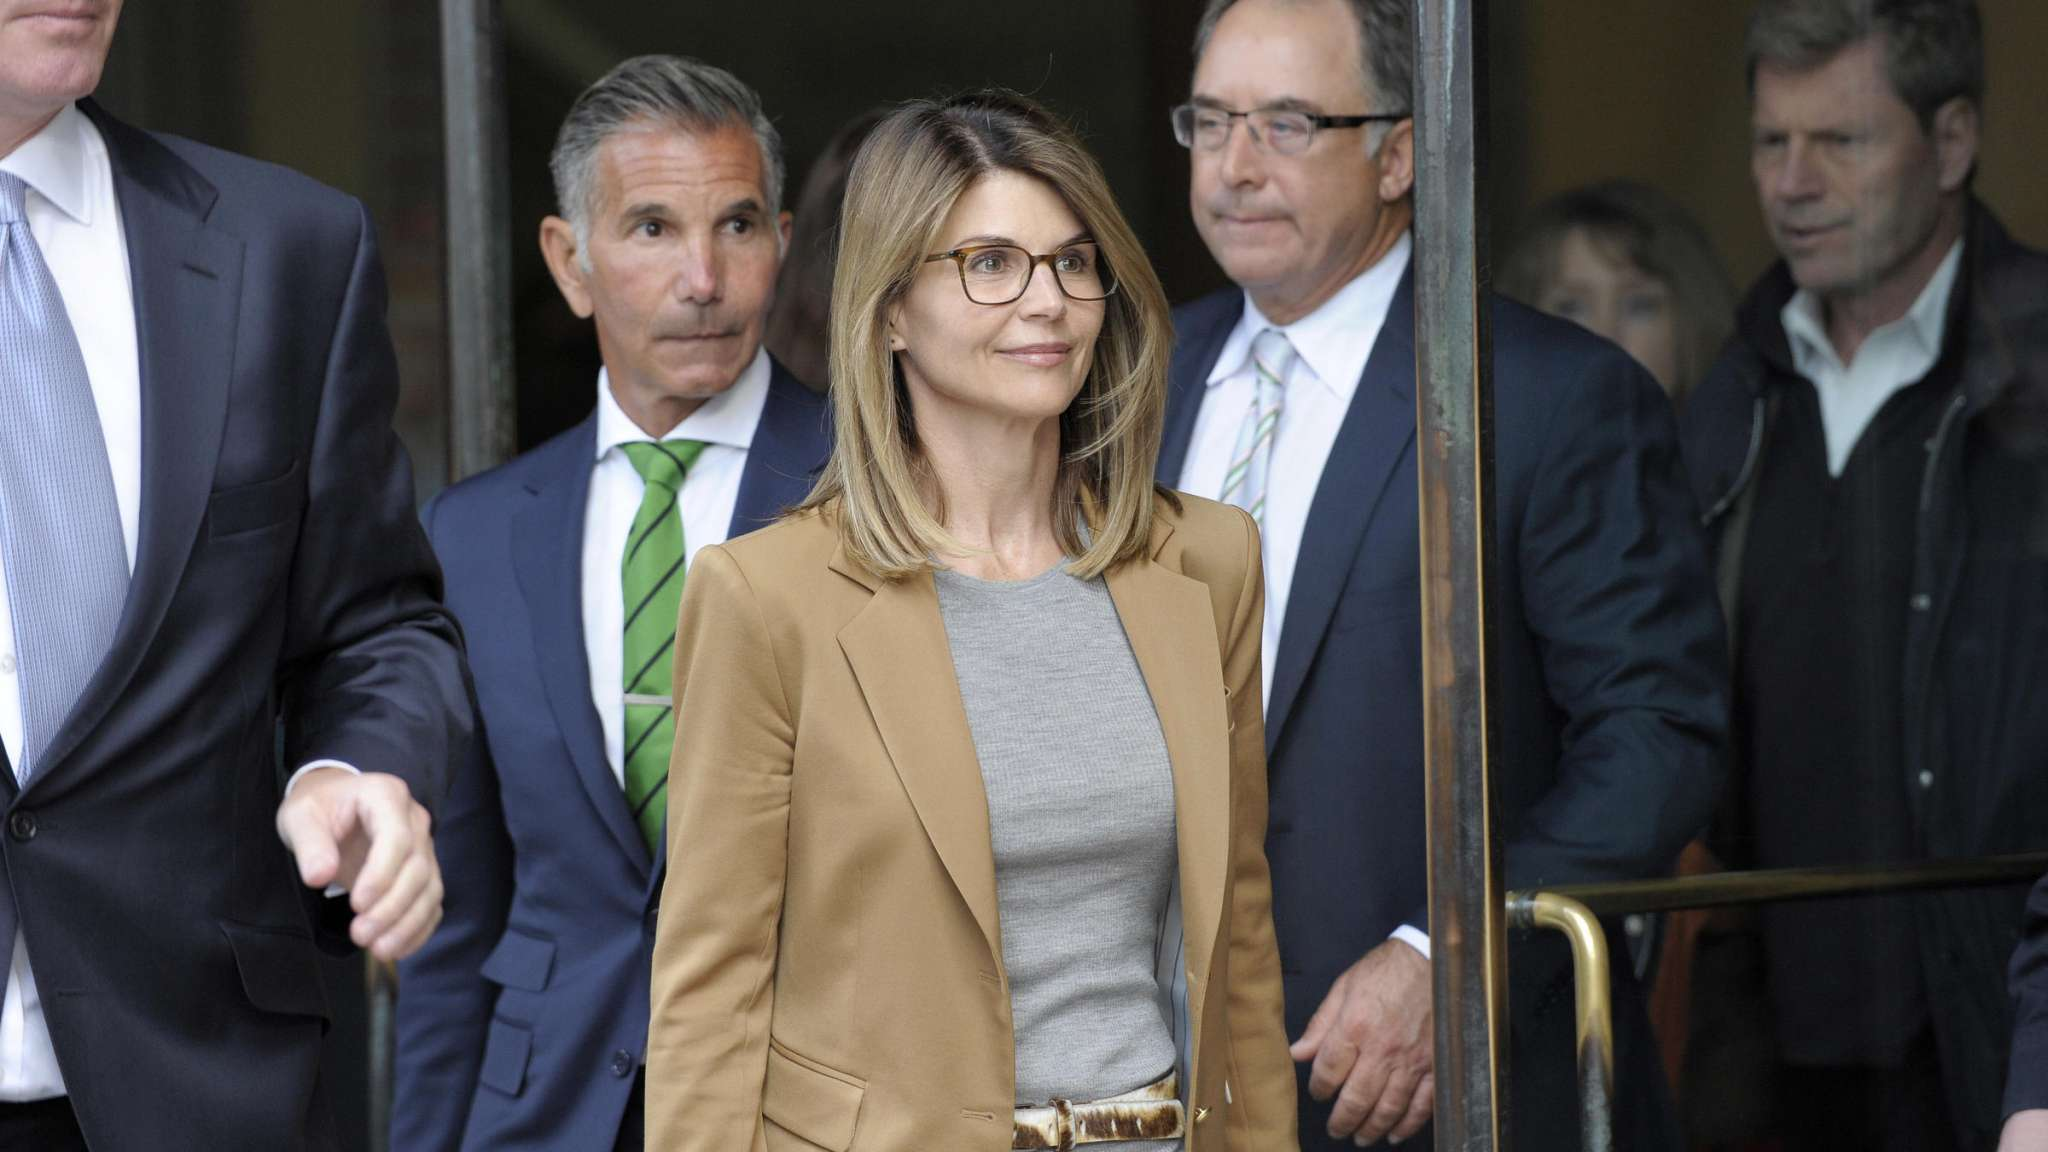 Lori Loughlin is very anxious  a guilty plea will affect her daughters